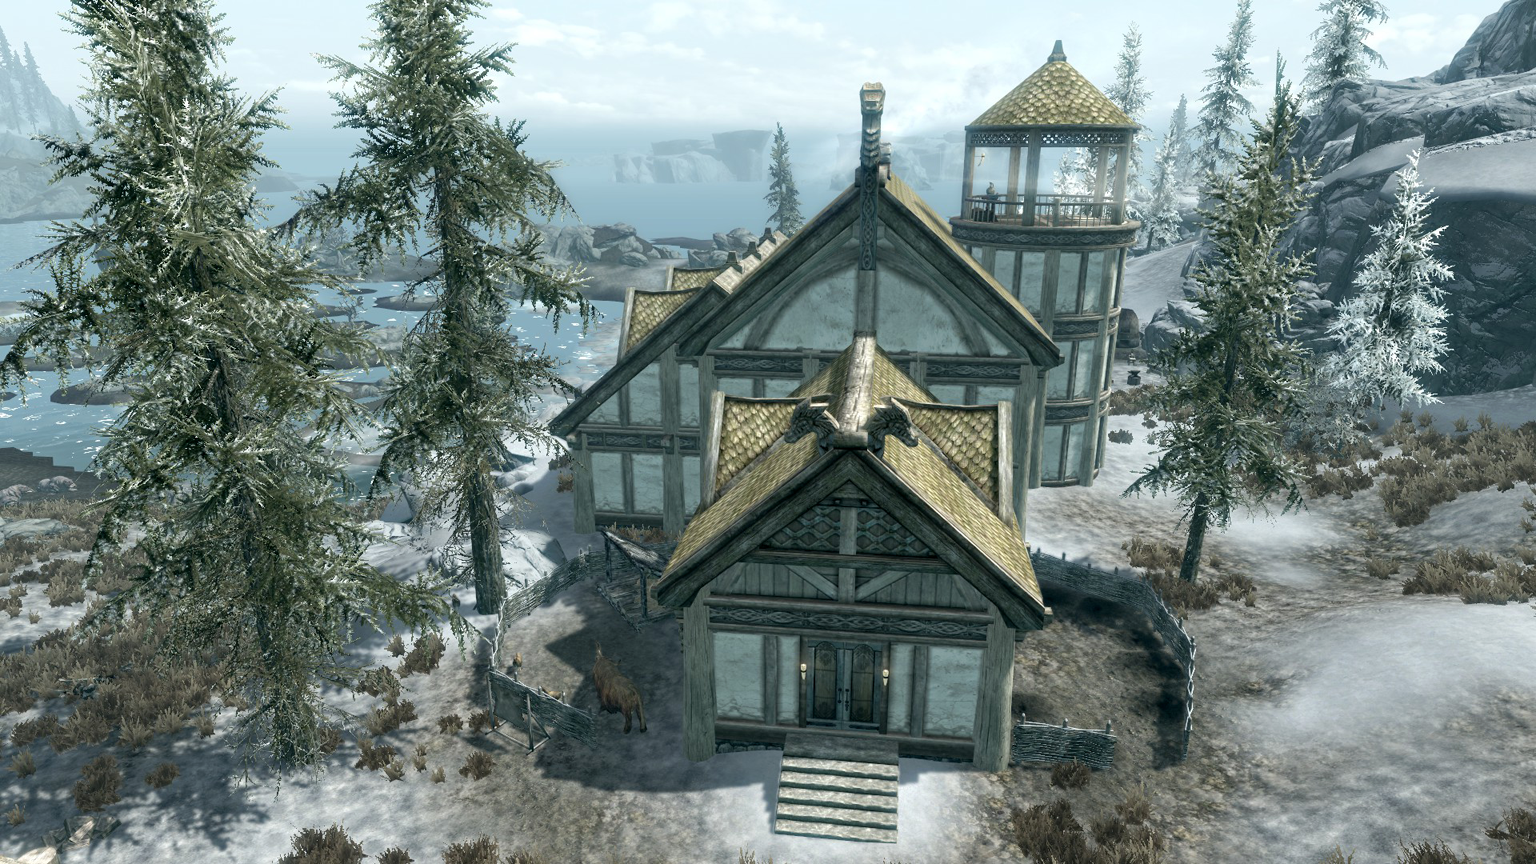 Skyrim Blueprints Of House Google Search House Layouts Manor House